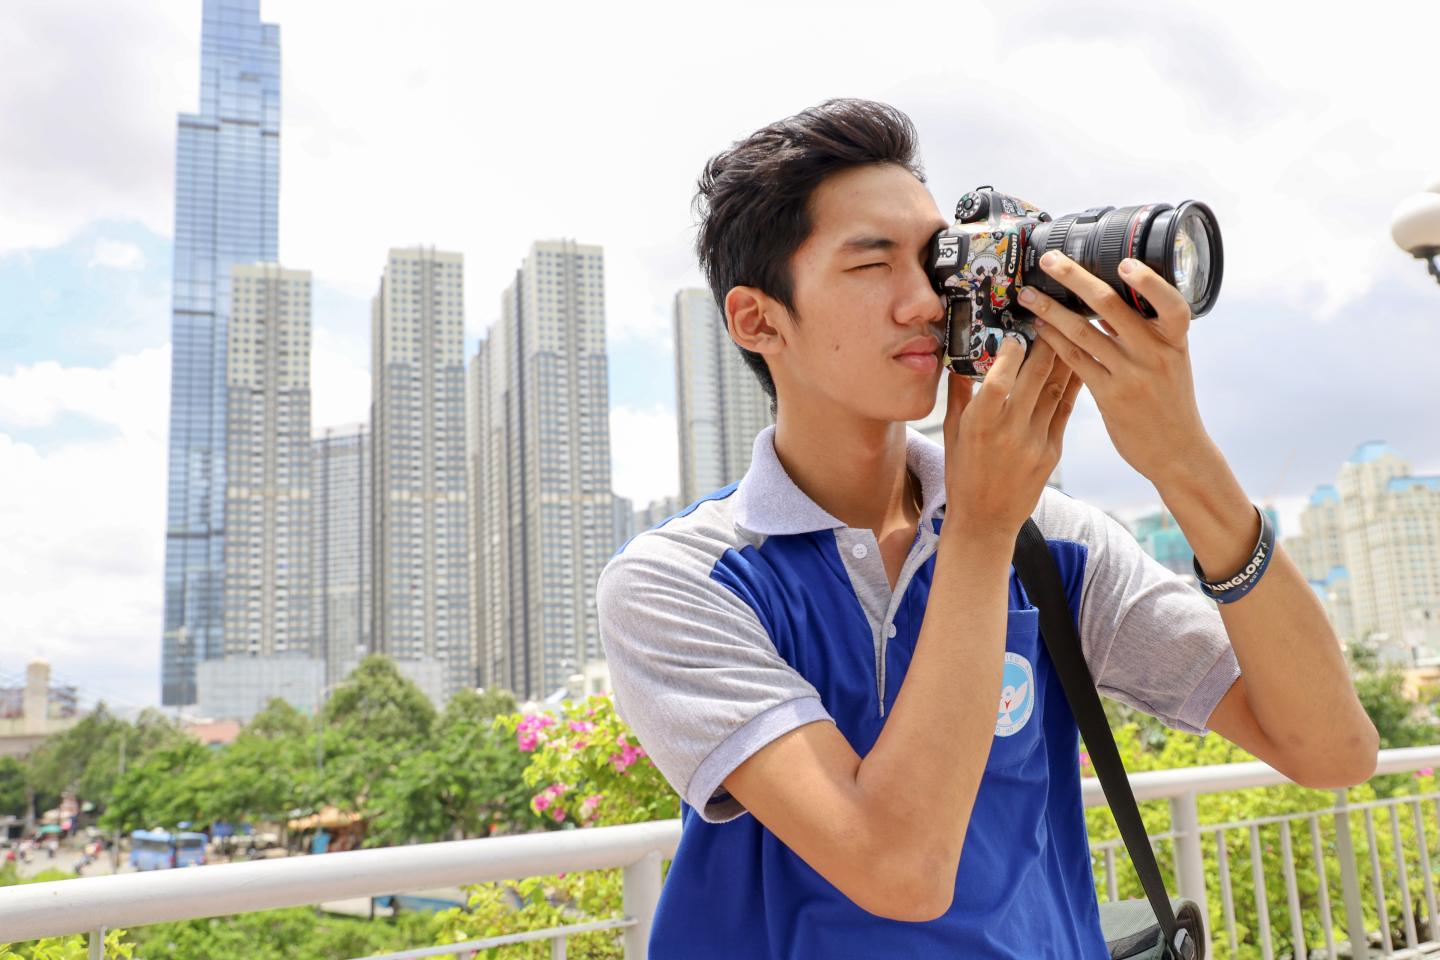 Through my eyes: Ho Chi Minh City, Viet Nam | UNICEF East Asia and Pacific